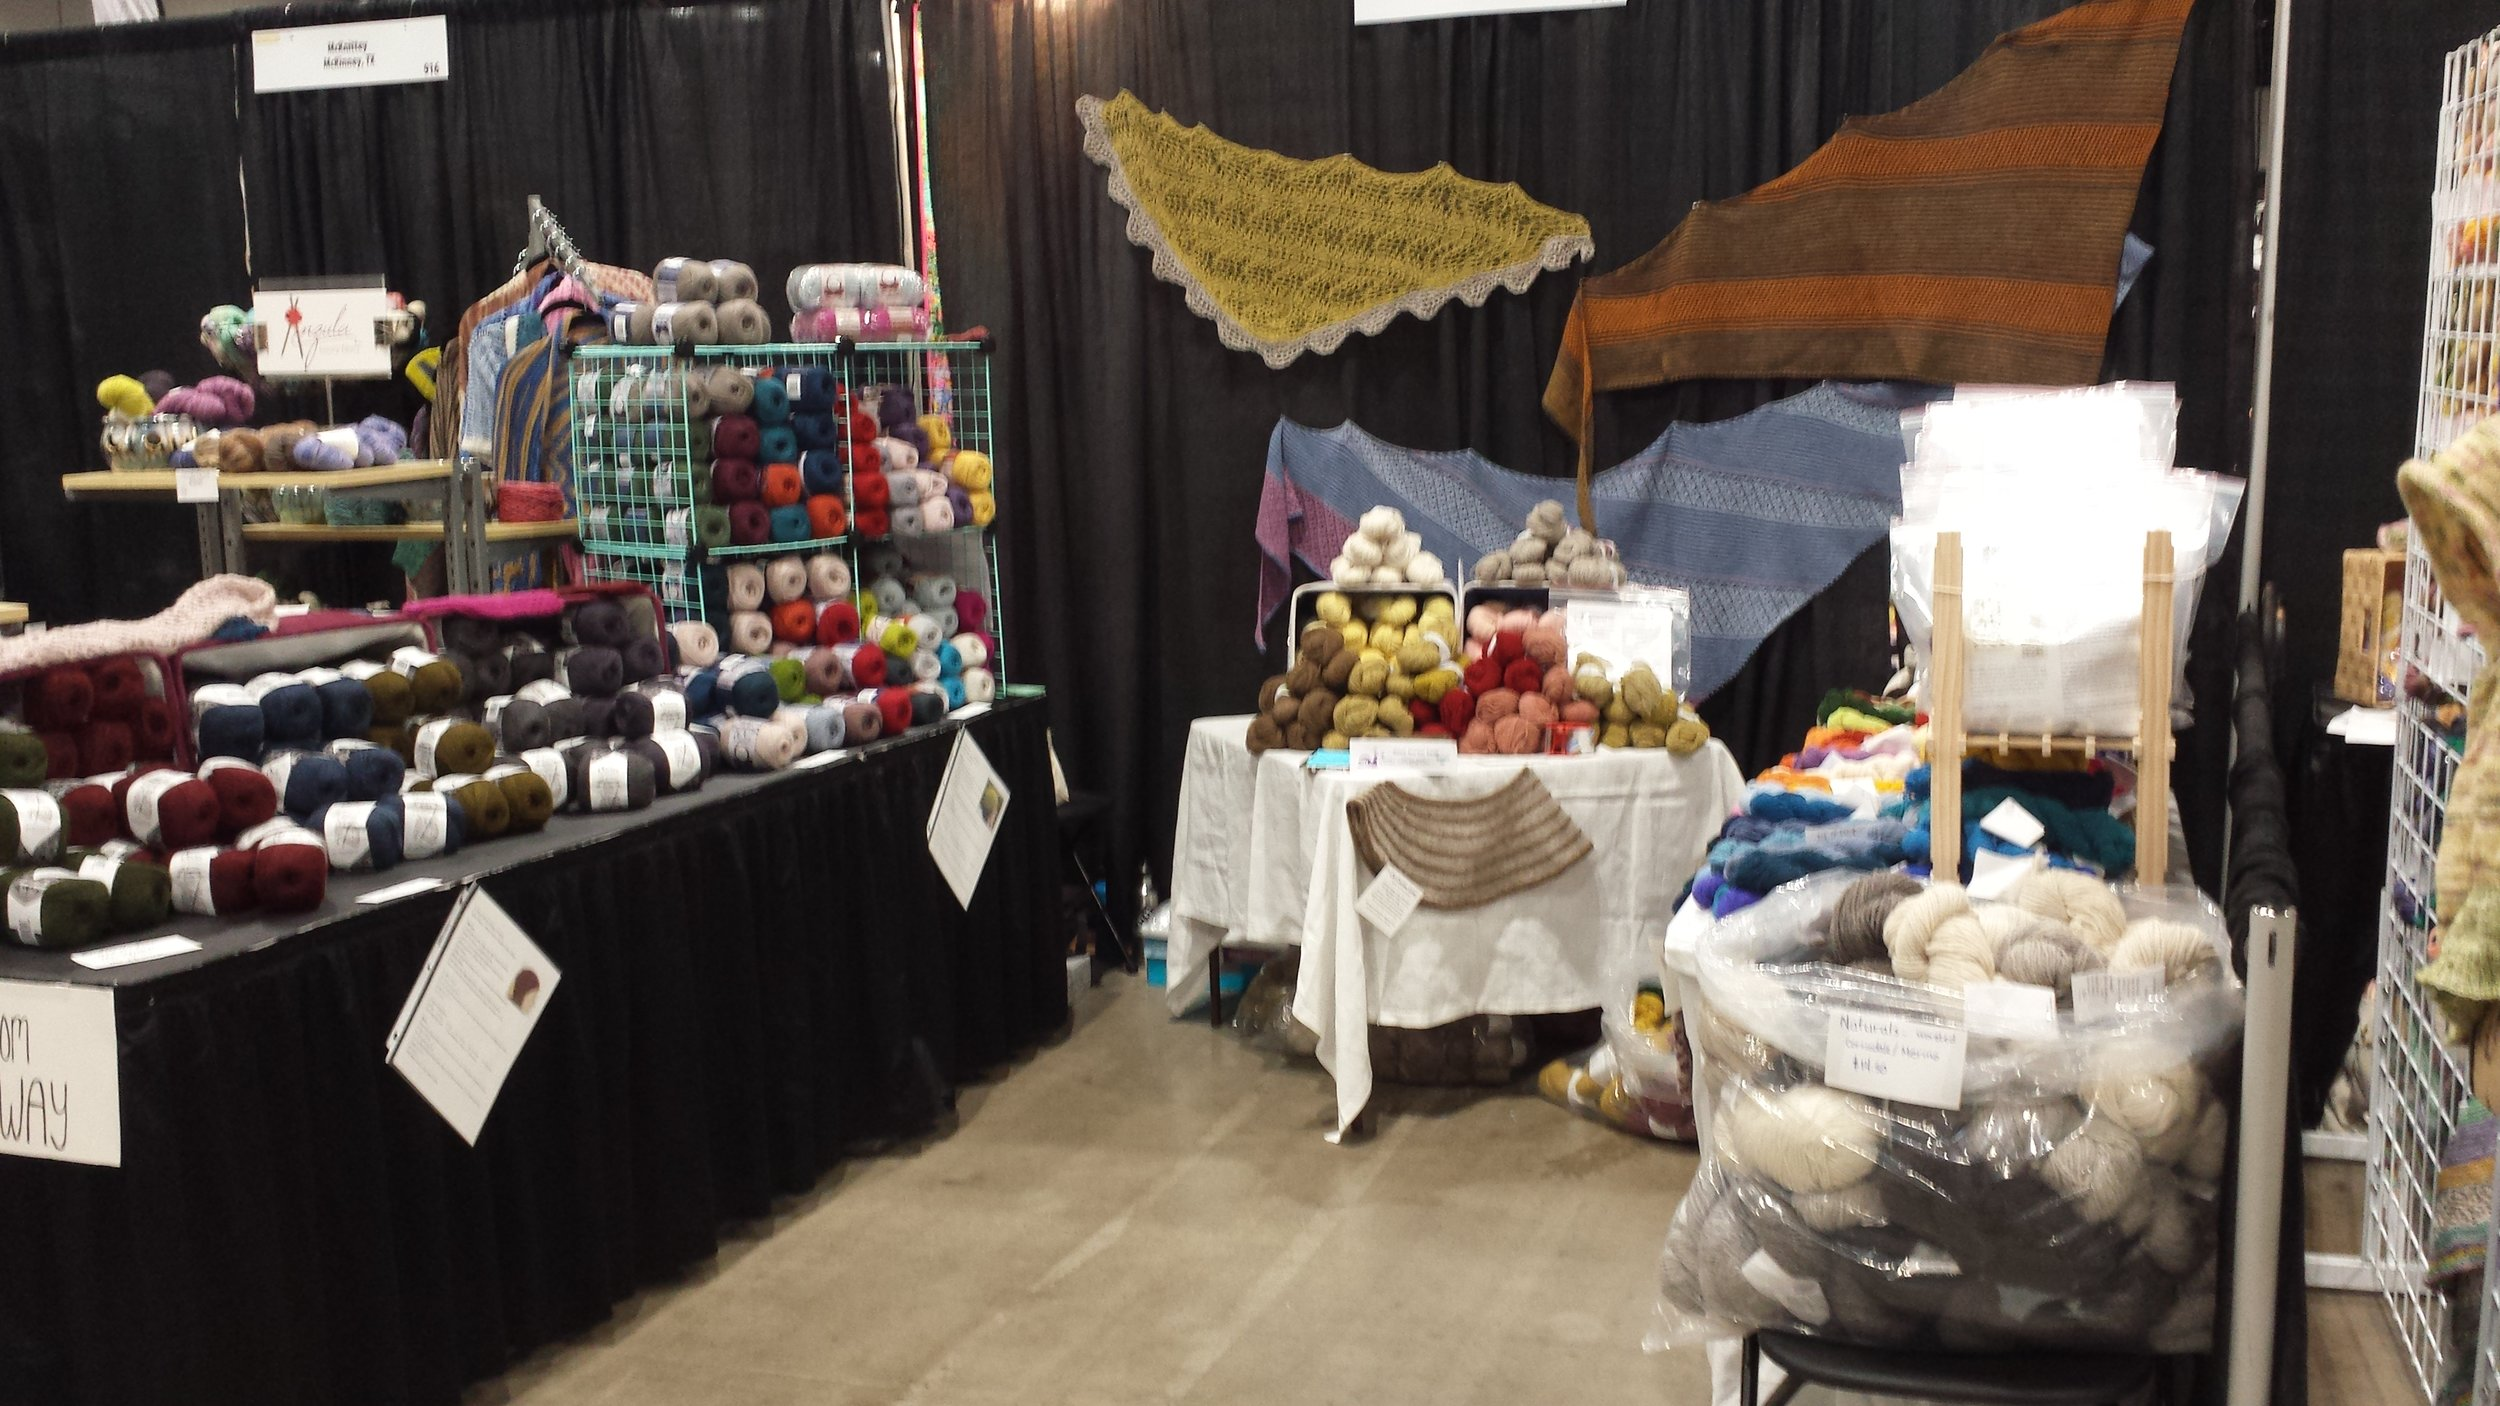 Out Booth at Stitches Midwest